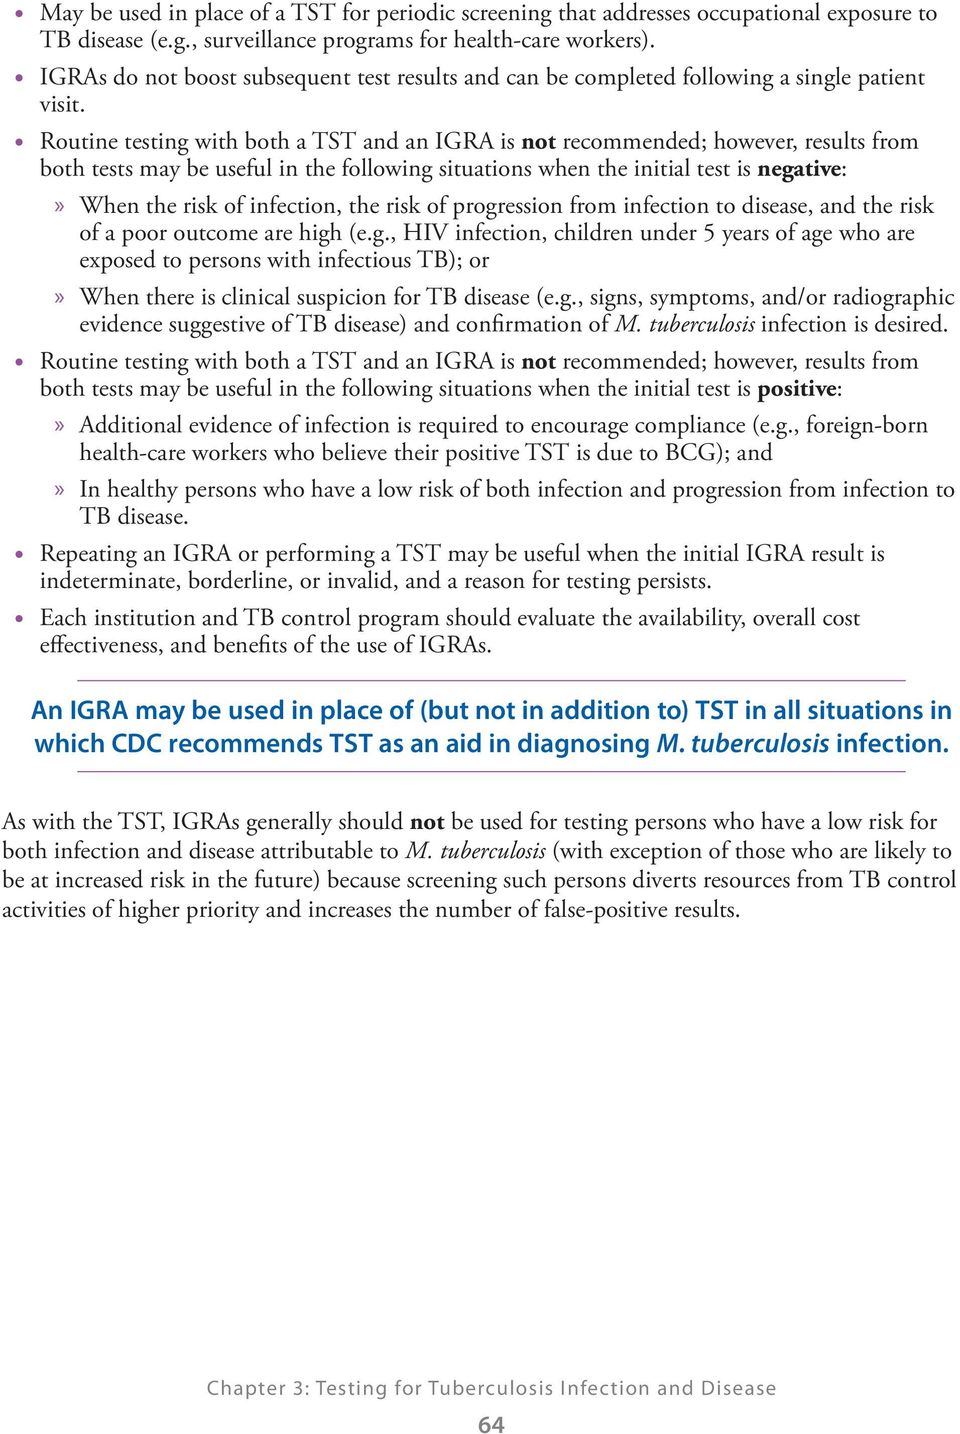 Routine testing with both a TST and an IGRA is not recommended; however, results from both tests may be useful in the following situations when the initial test is negative: When the risk of